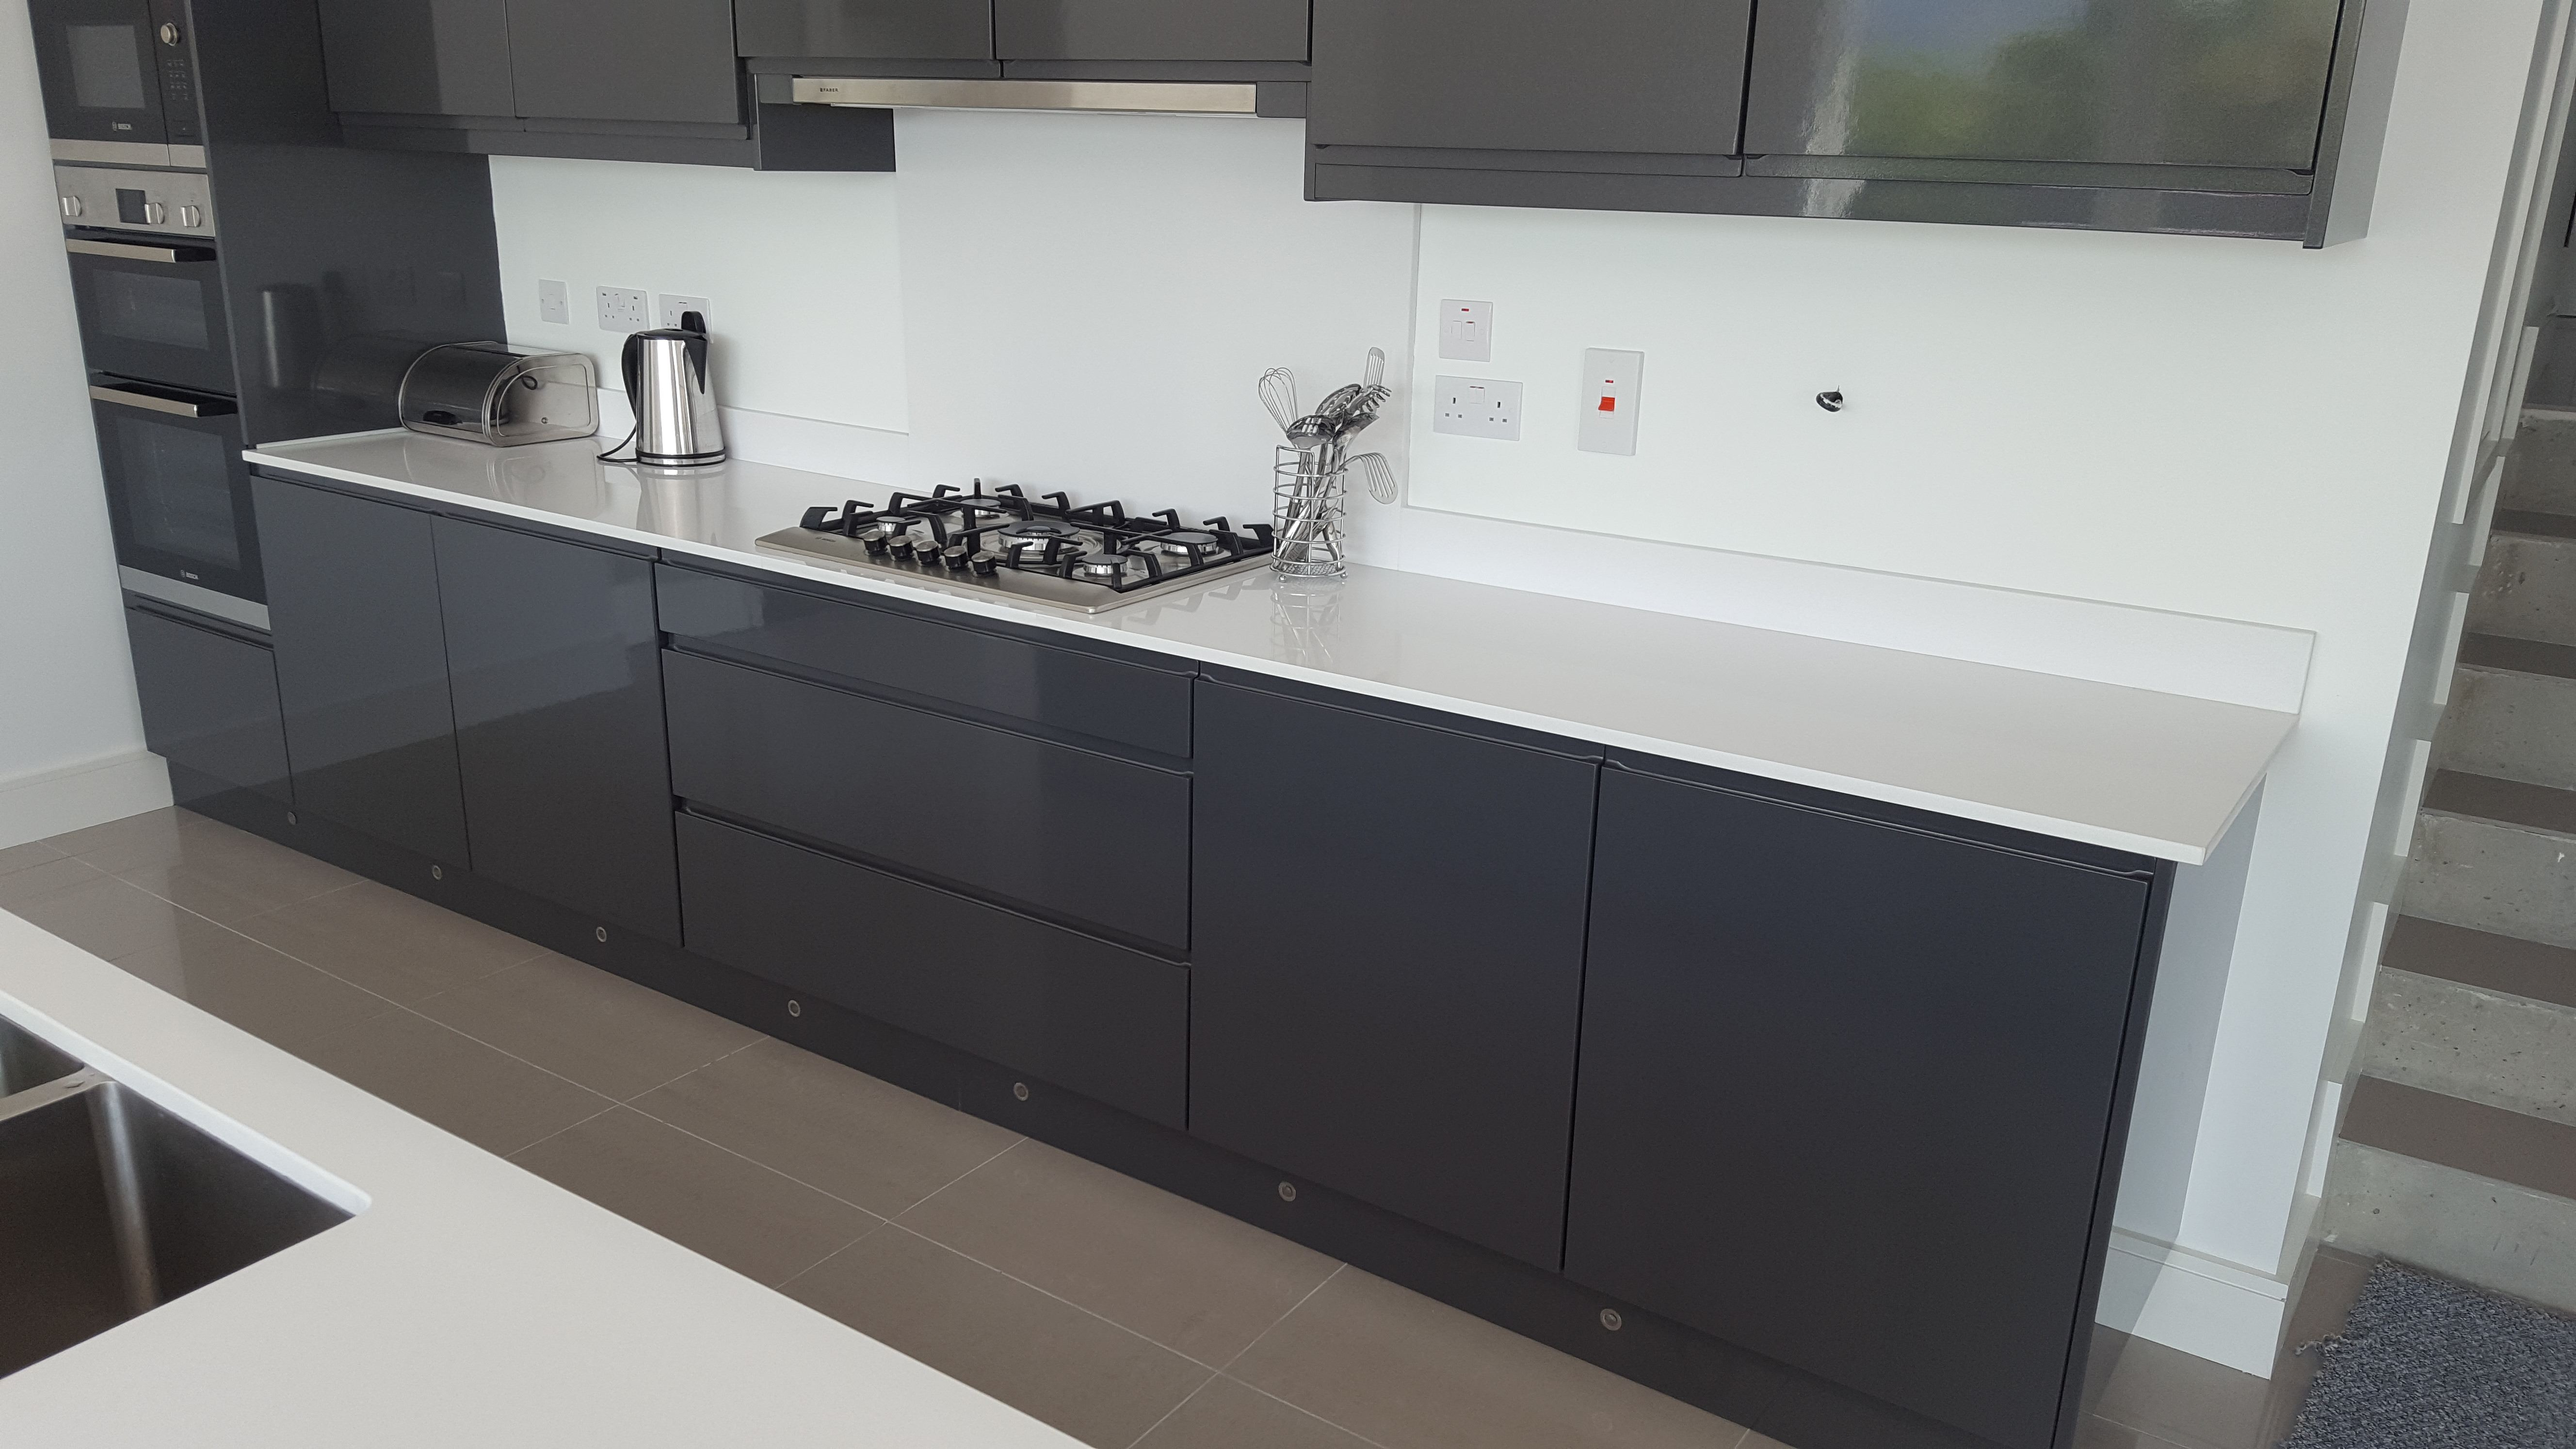 High Gloss Anthracite Handless Kitchen Karl Cullen Fitted Furniture Wexford